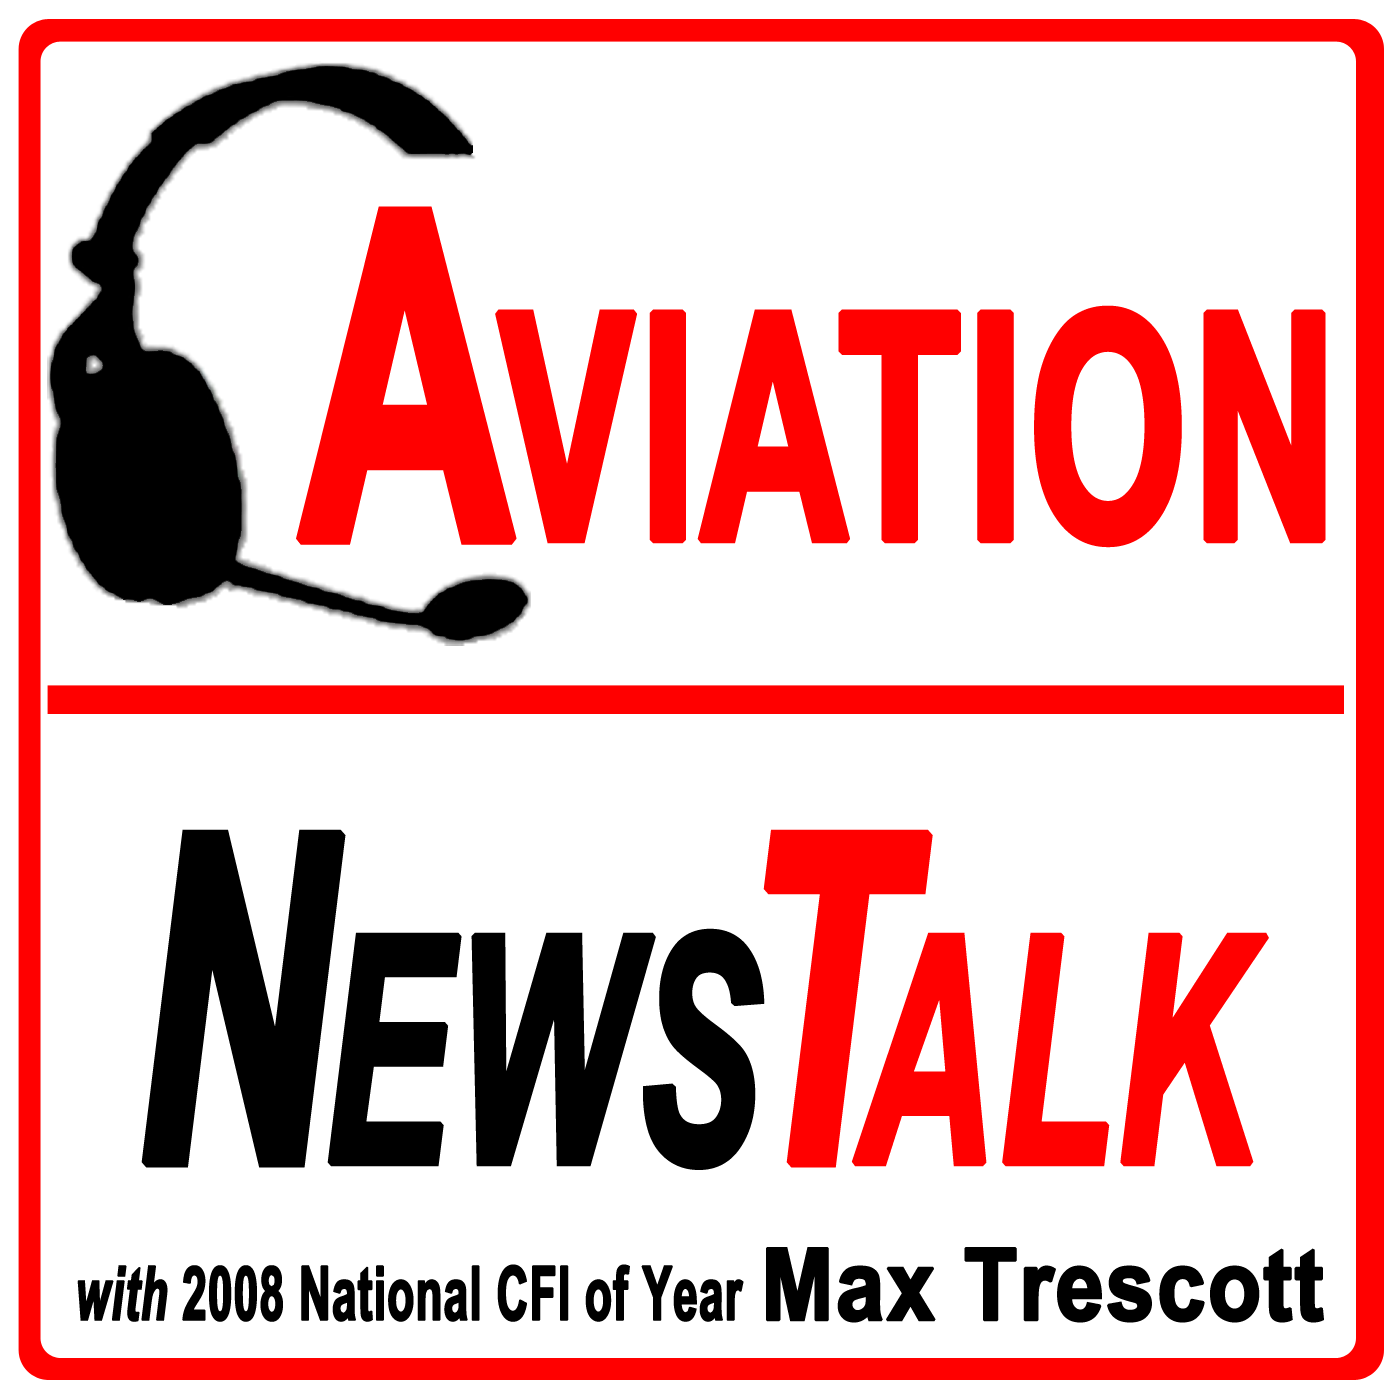 Aviation News Talk podcast